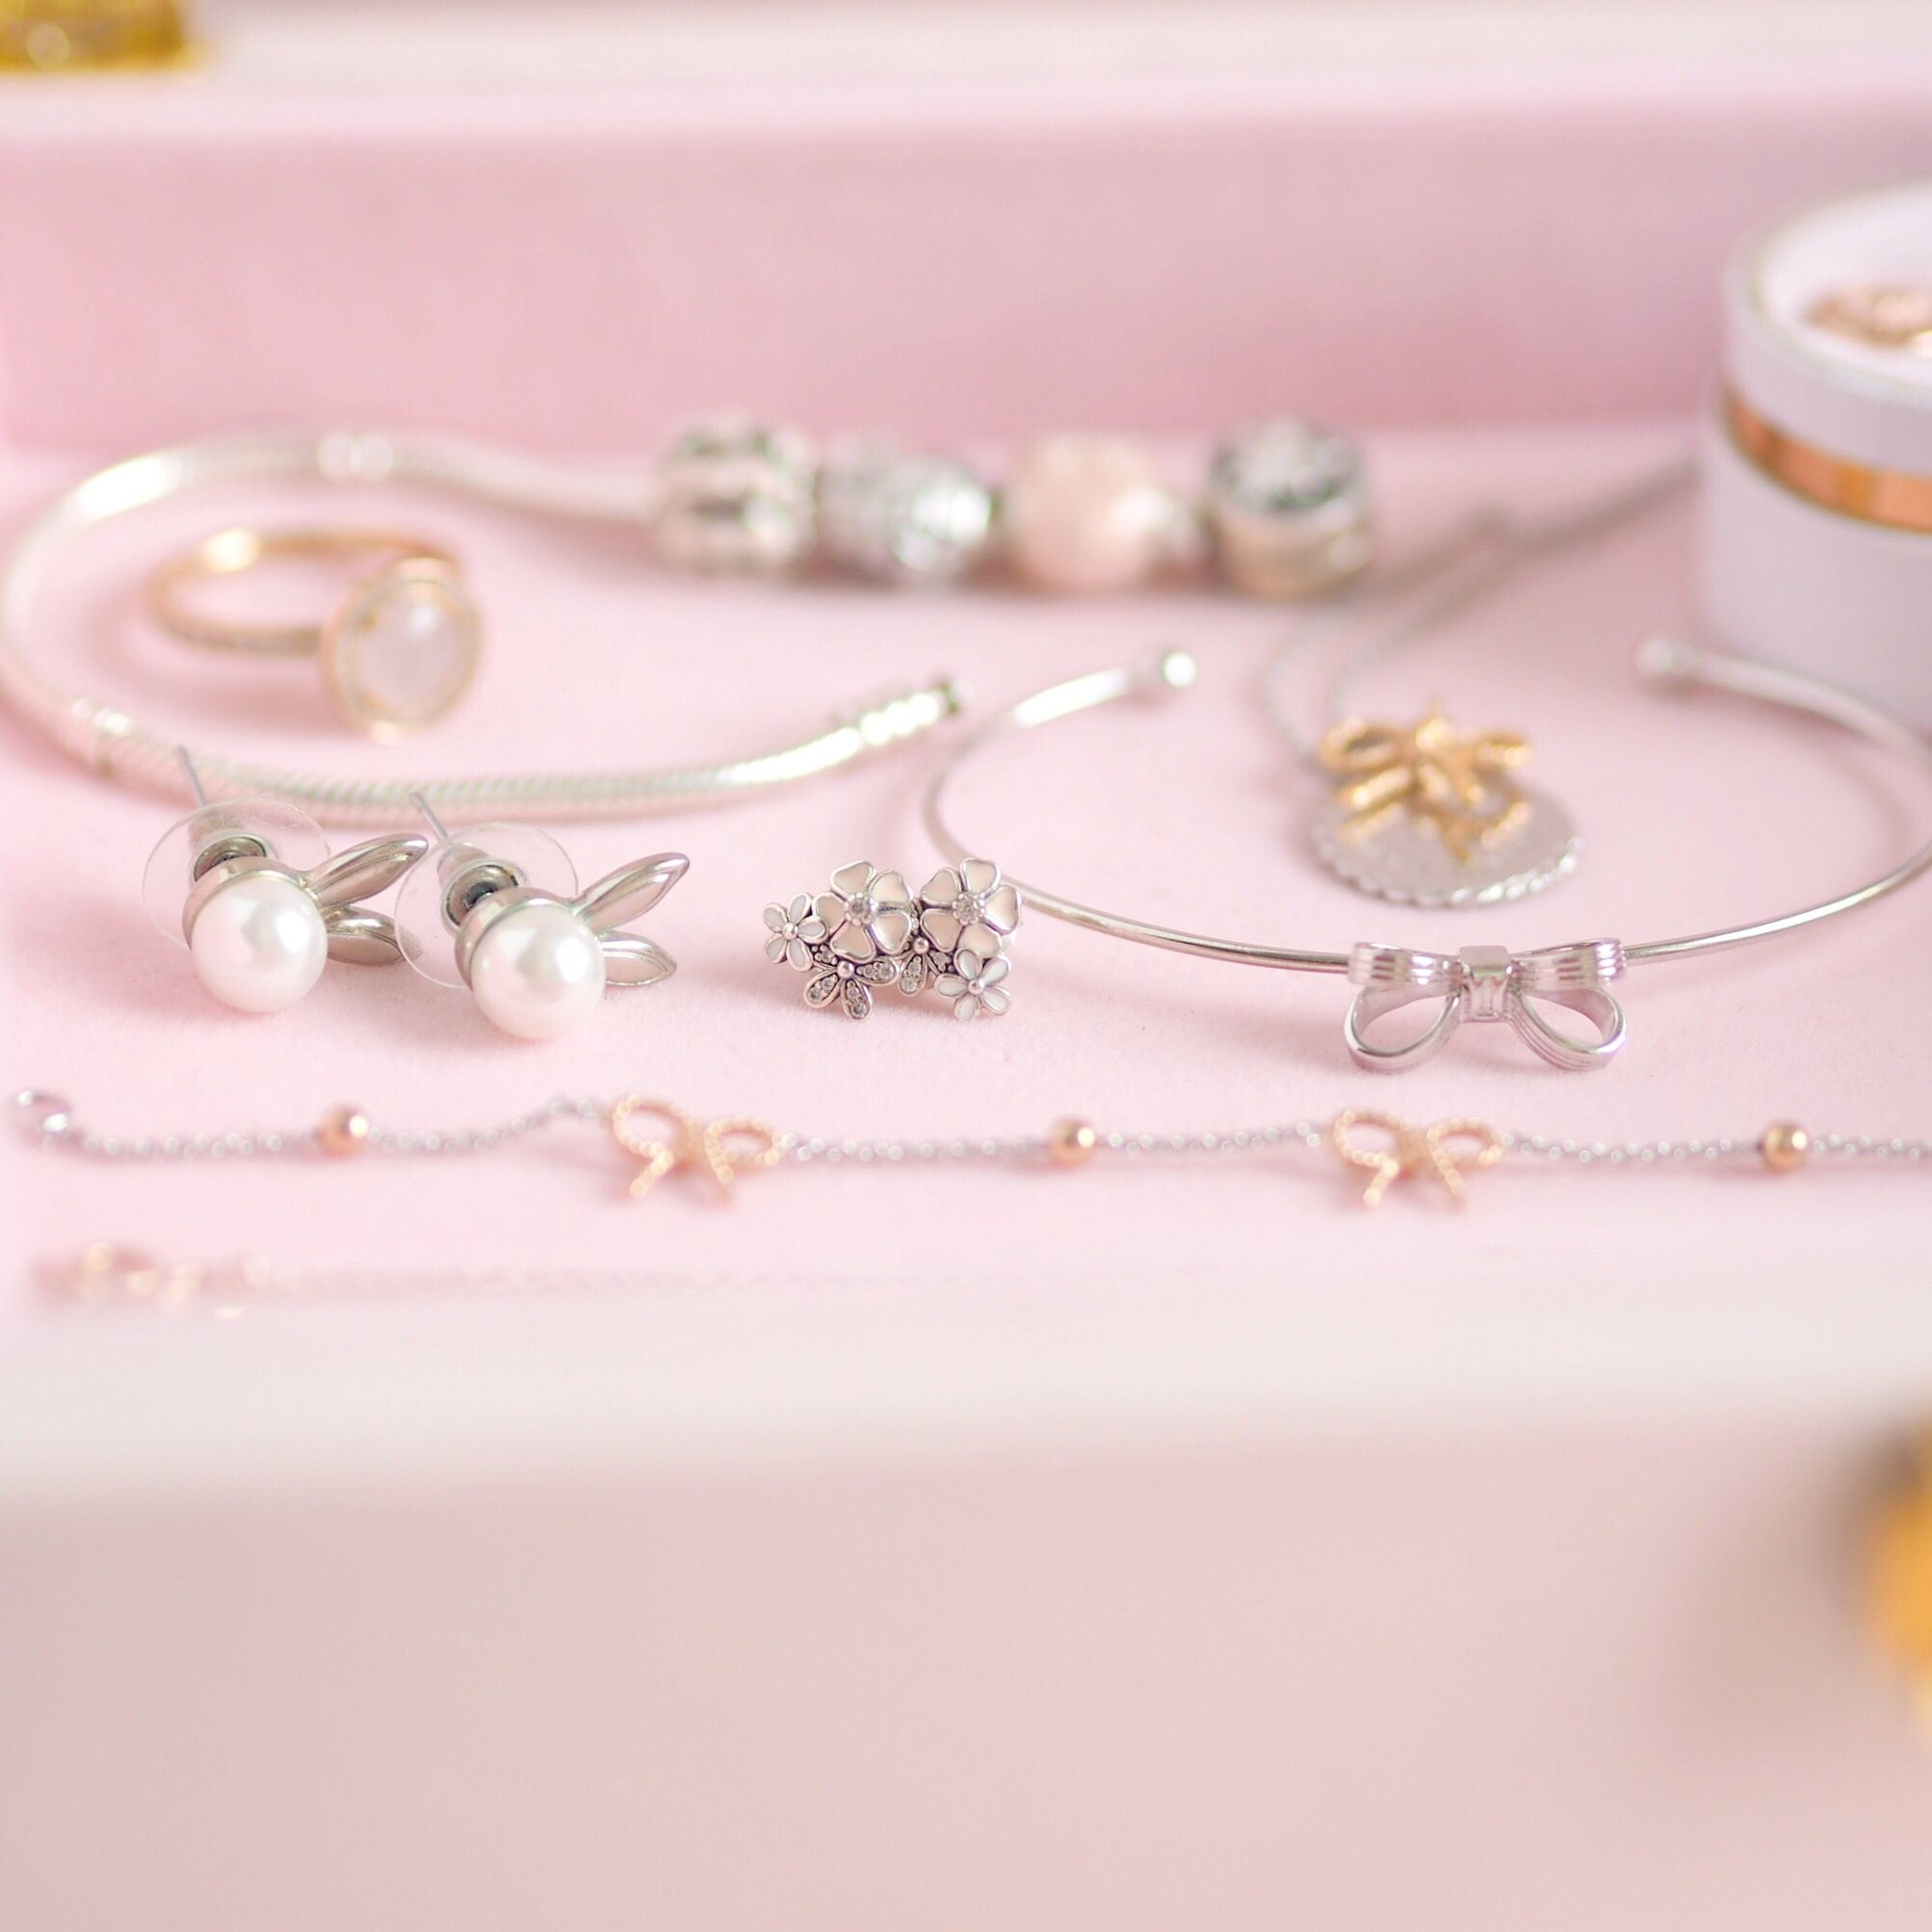 Inside My Jewellery Box: My Favourite Dainty Pieces, Pandora Poetic Blooms Earrings, Ted Baker Silver Bow Cuff | Love Catherine